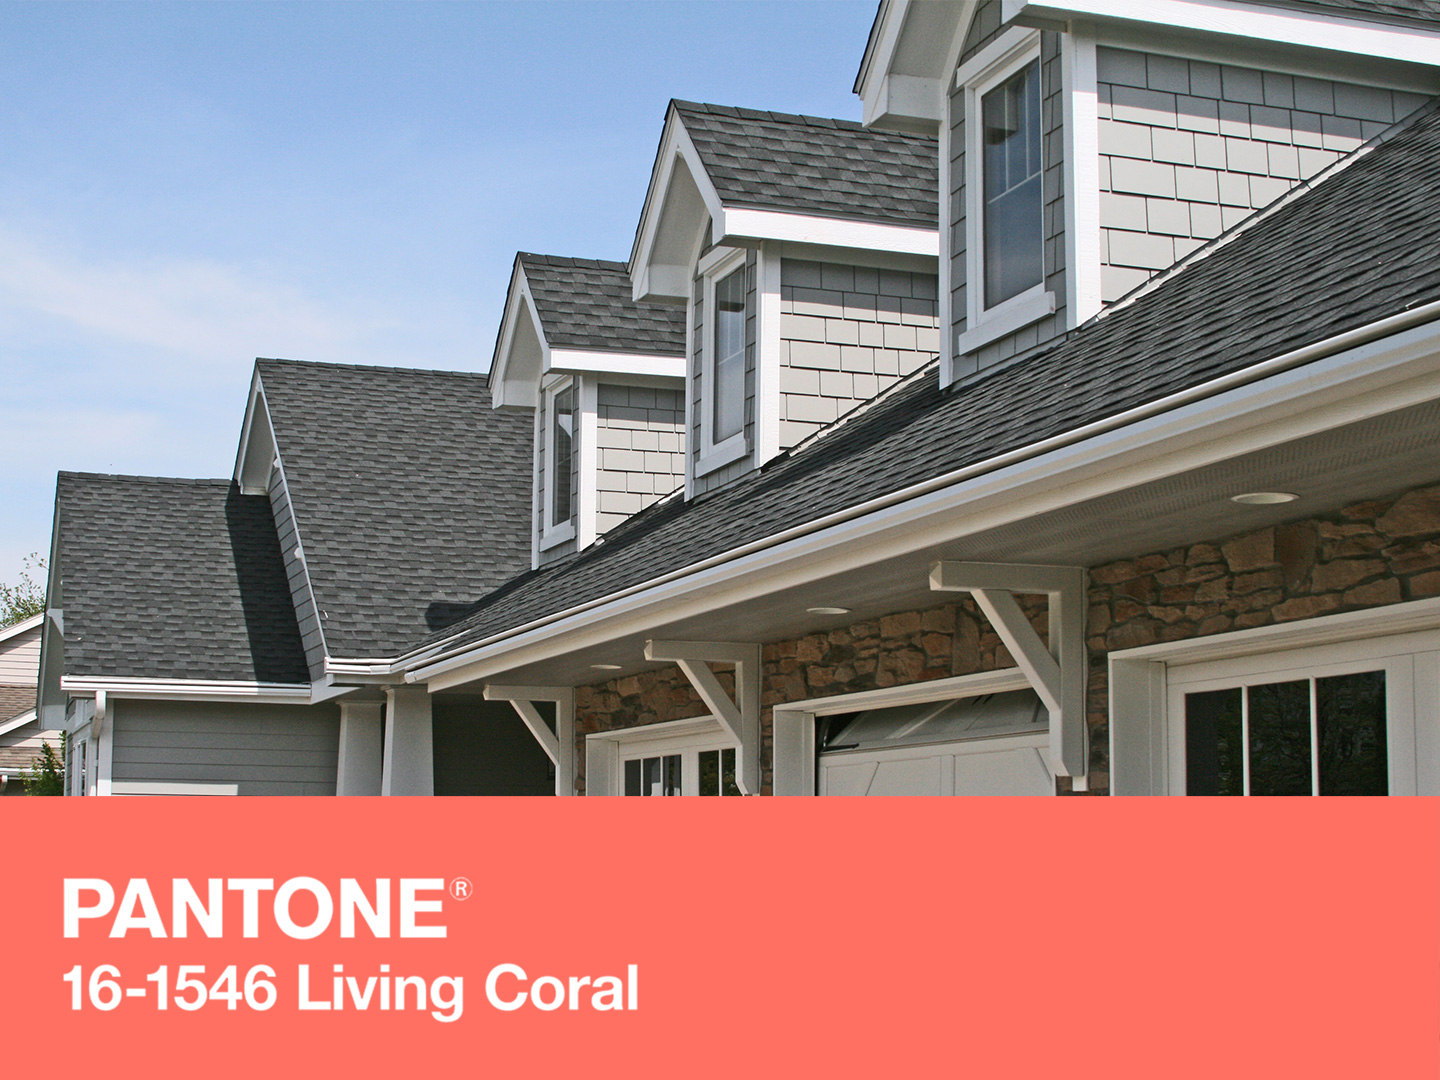 Pantone with GAF shingles and LeafGuard® gutters.